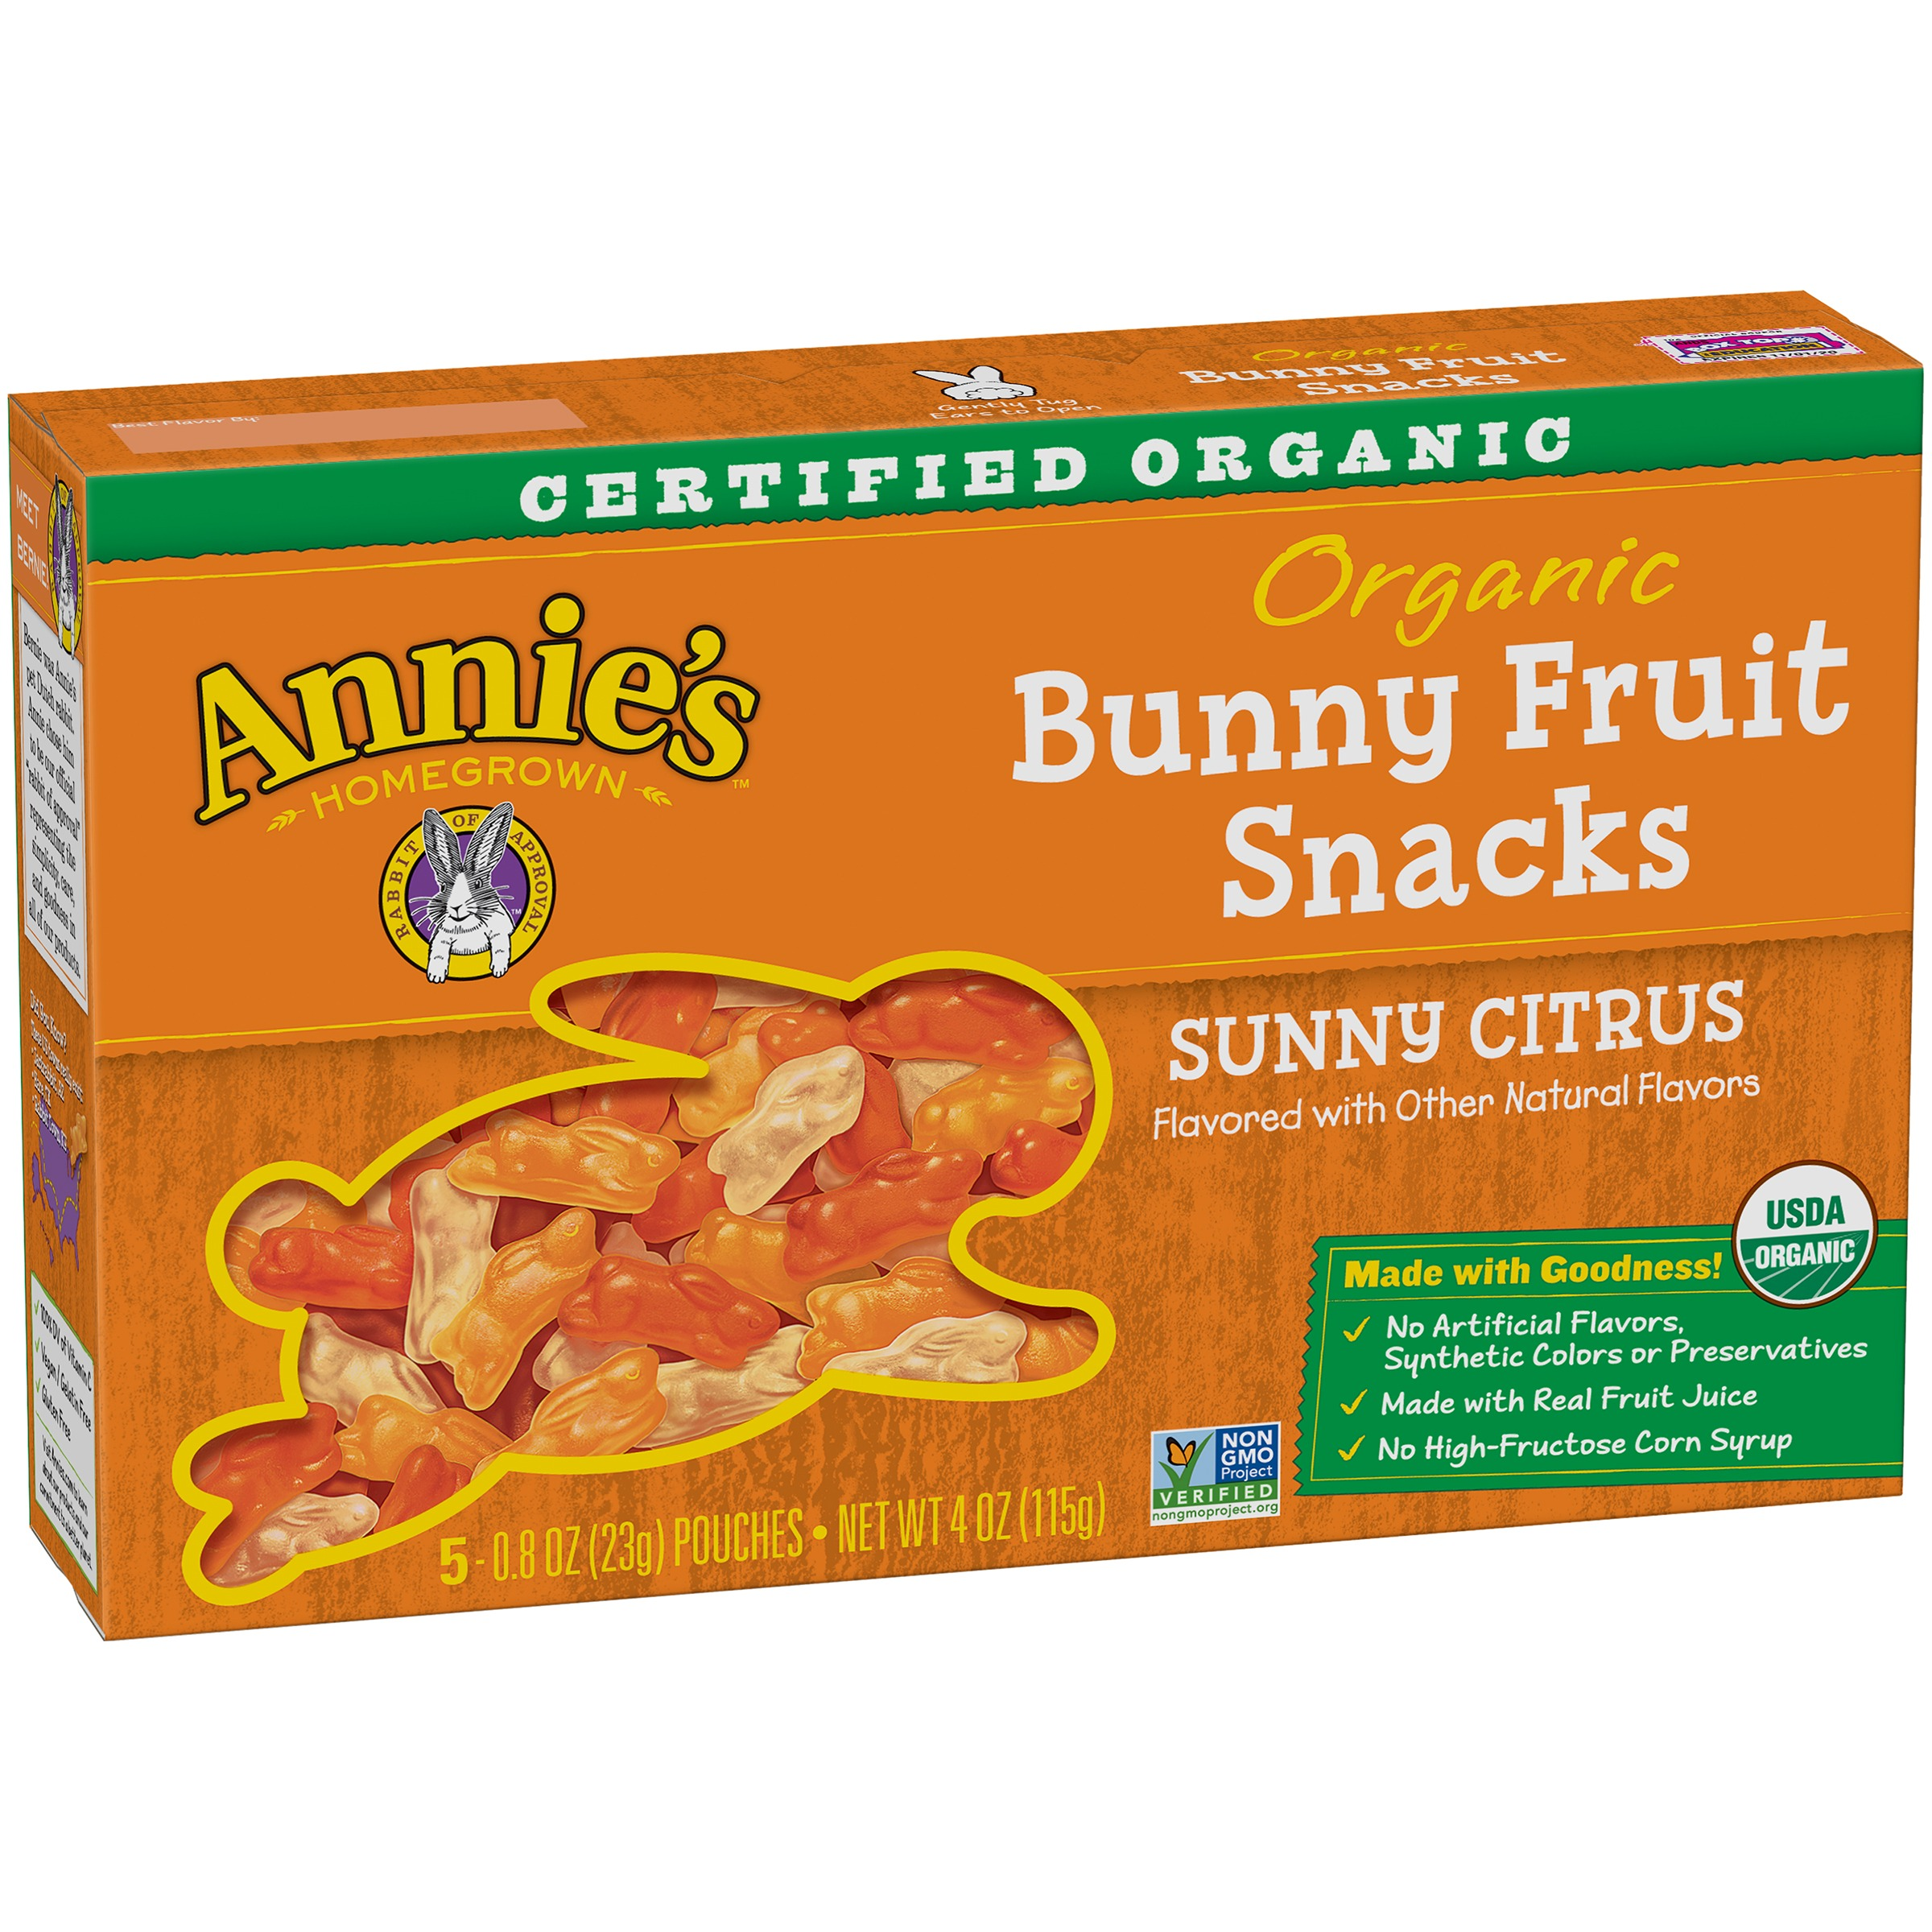 Annie's Homegrown Sunny Citrus Organic Bunny Fruit Snacks, 0.8 oz, 5 count by Annie's Homegrown